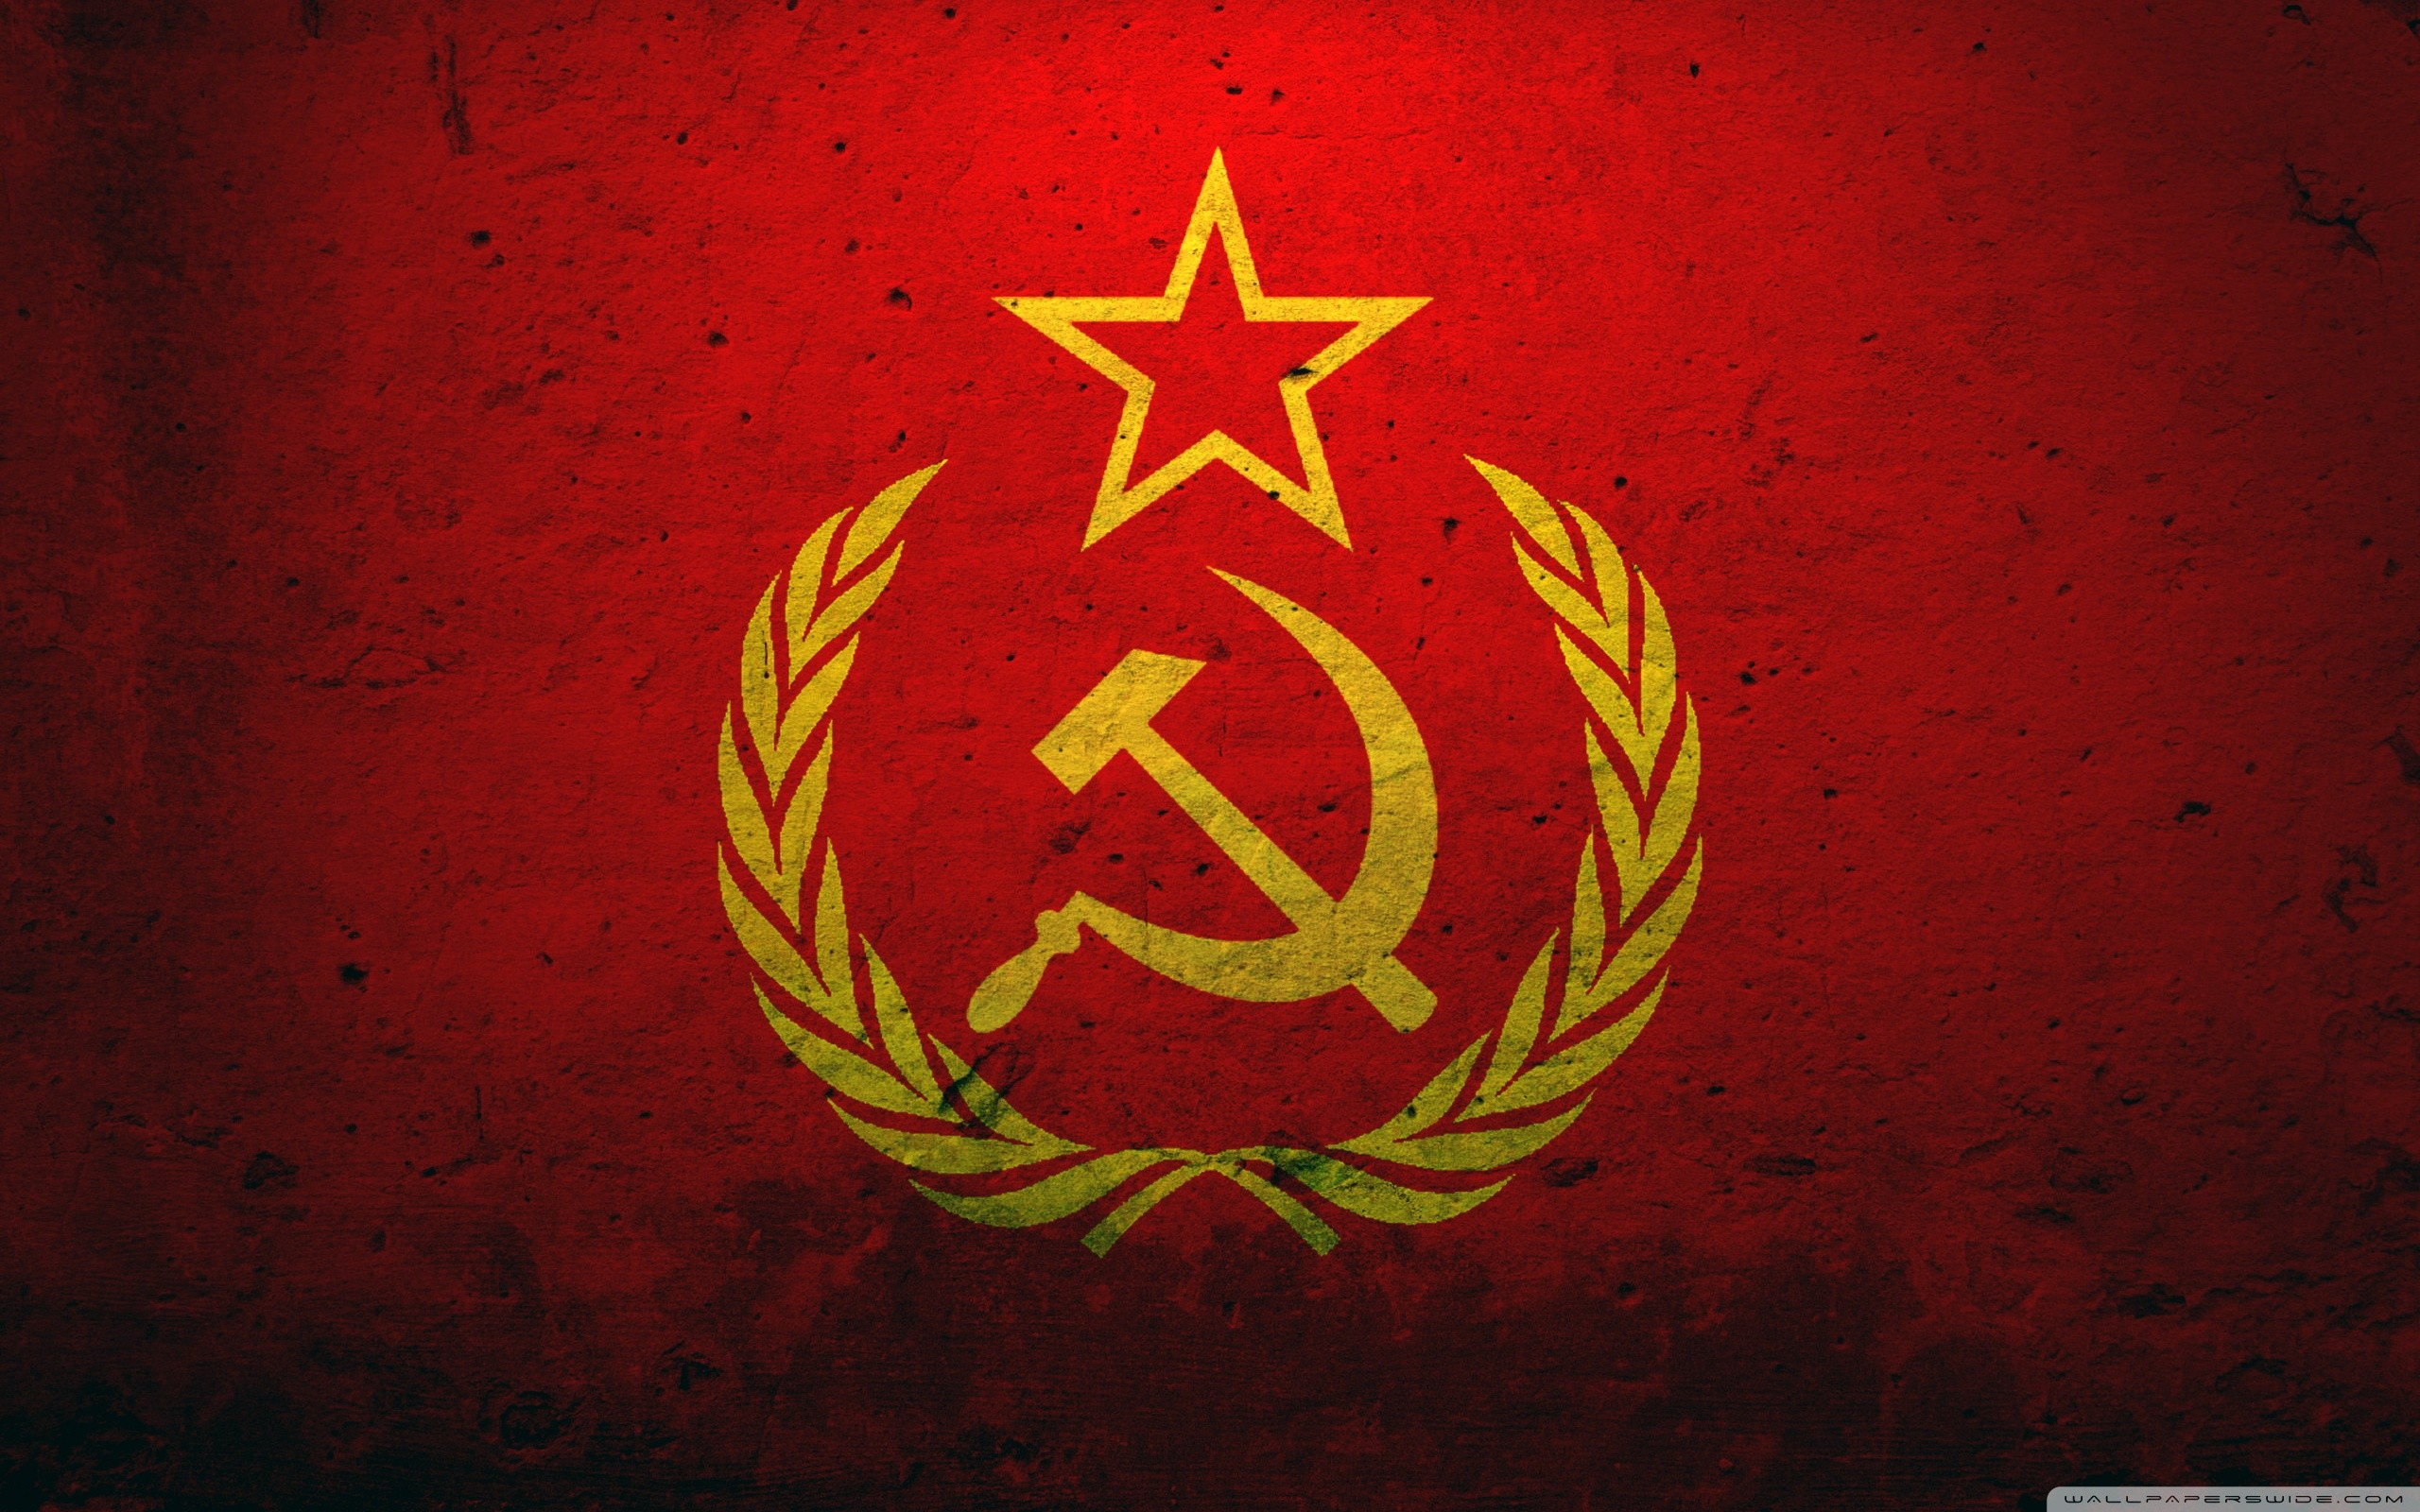 Soviet wallpaper hd 72 images - Ussr wallpaper ...